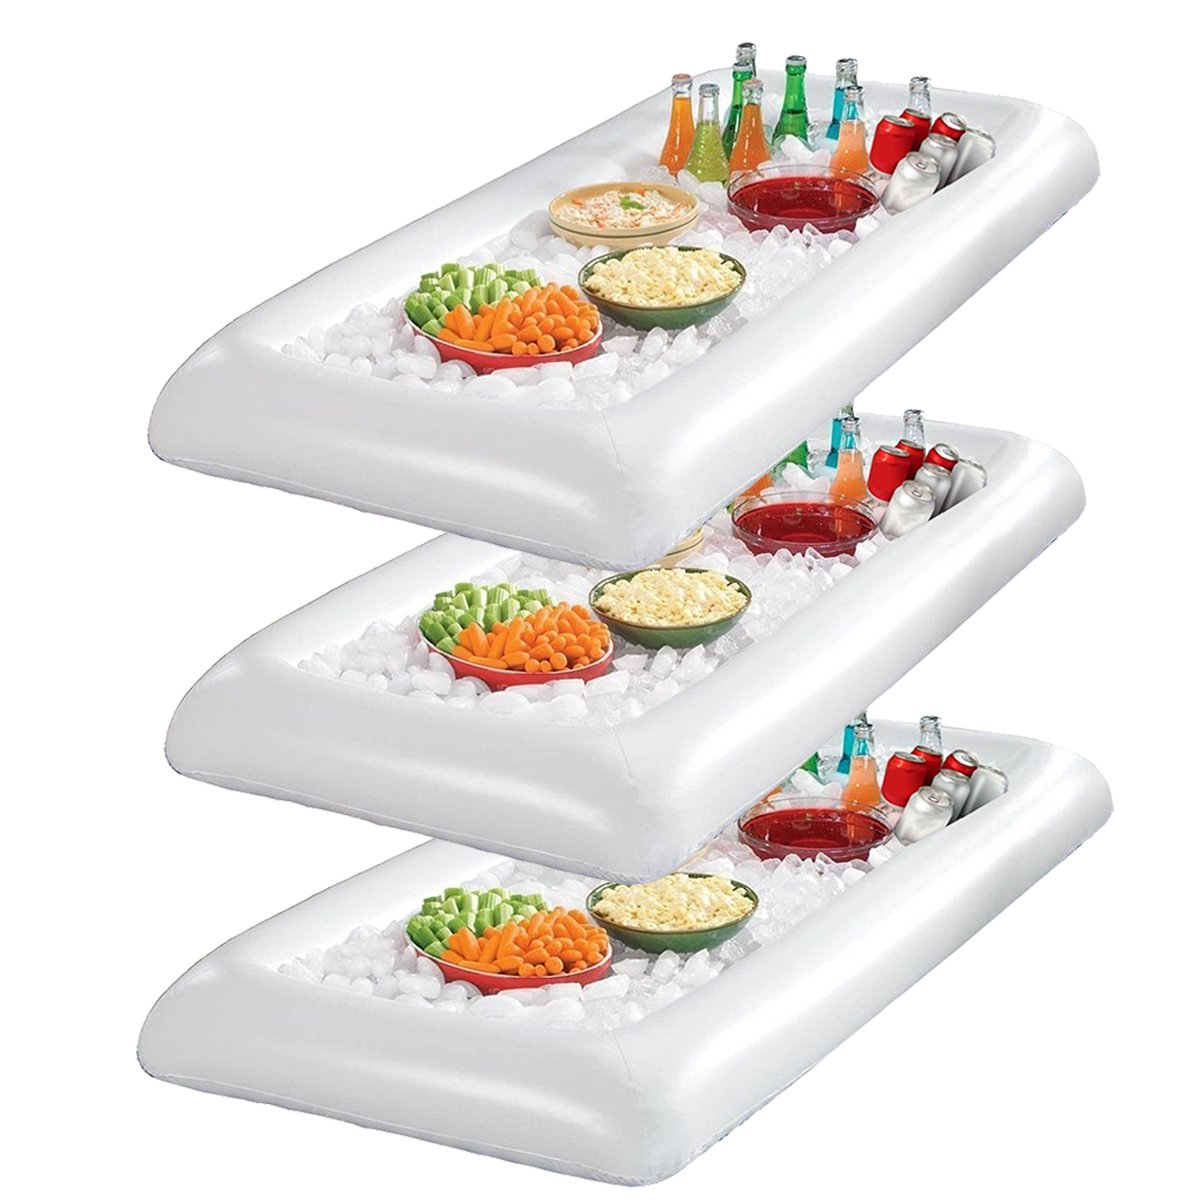 Infltable Buffet Serving & Salad Bar Ice Buckets Food Cooler Inflatable Beer Drink Tray,Food Drink Holder BBQ Picnic Pool,with Drain Plug (3 Pack) by EVINIS